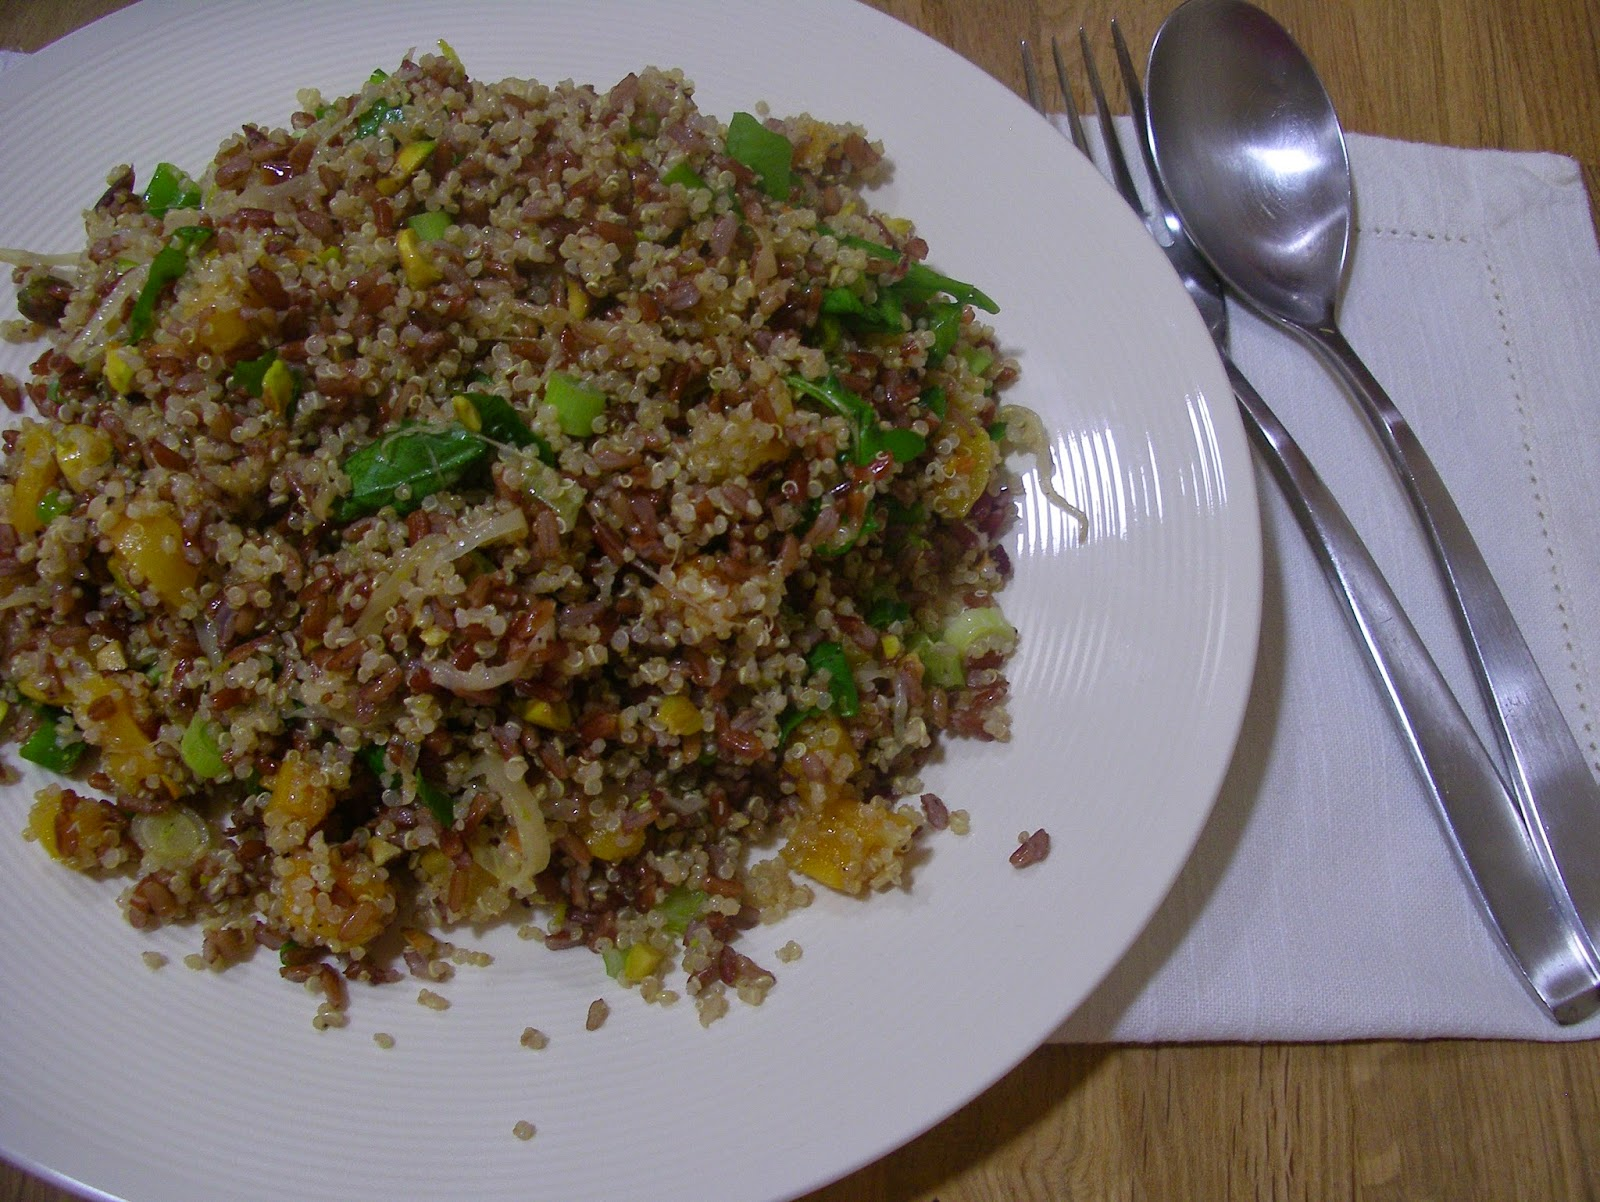 Camargue red rice and quinoa with orange, dried apricots and pistachios